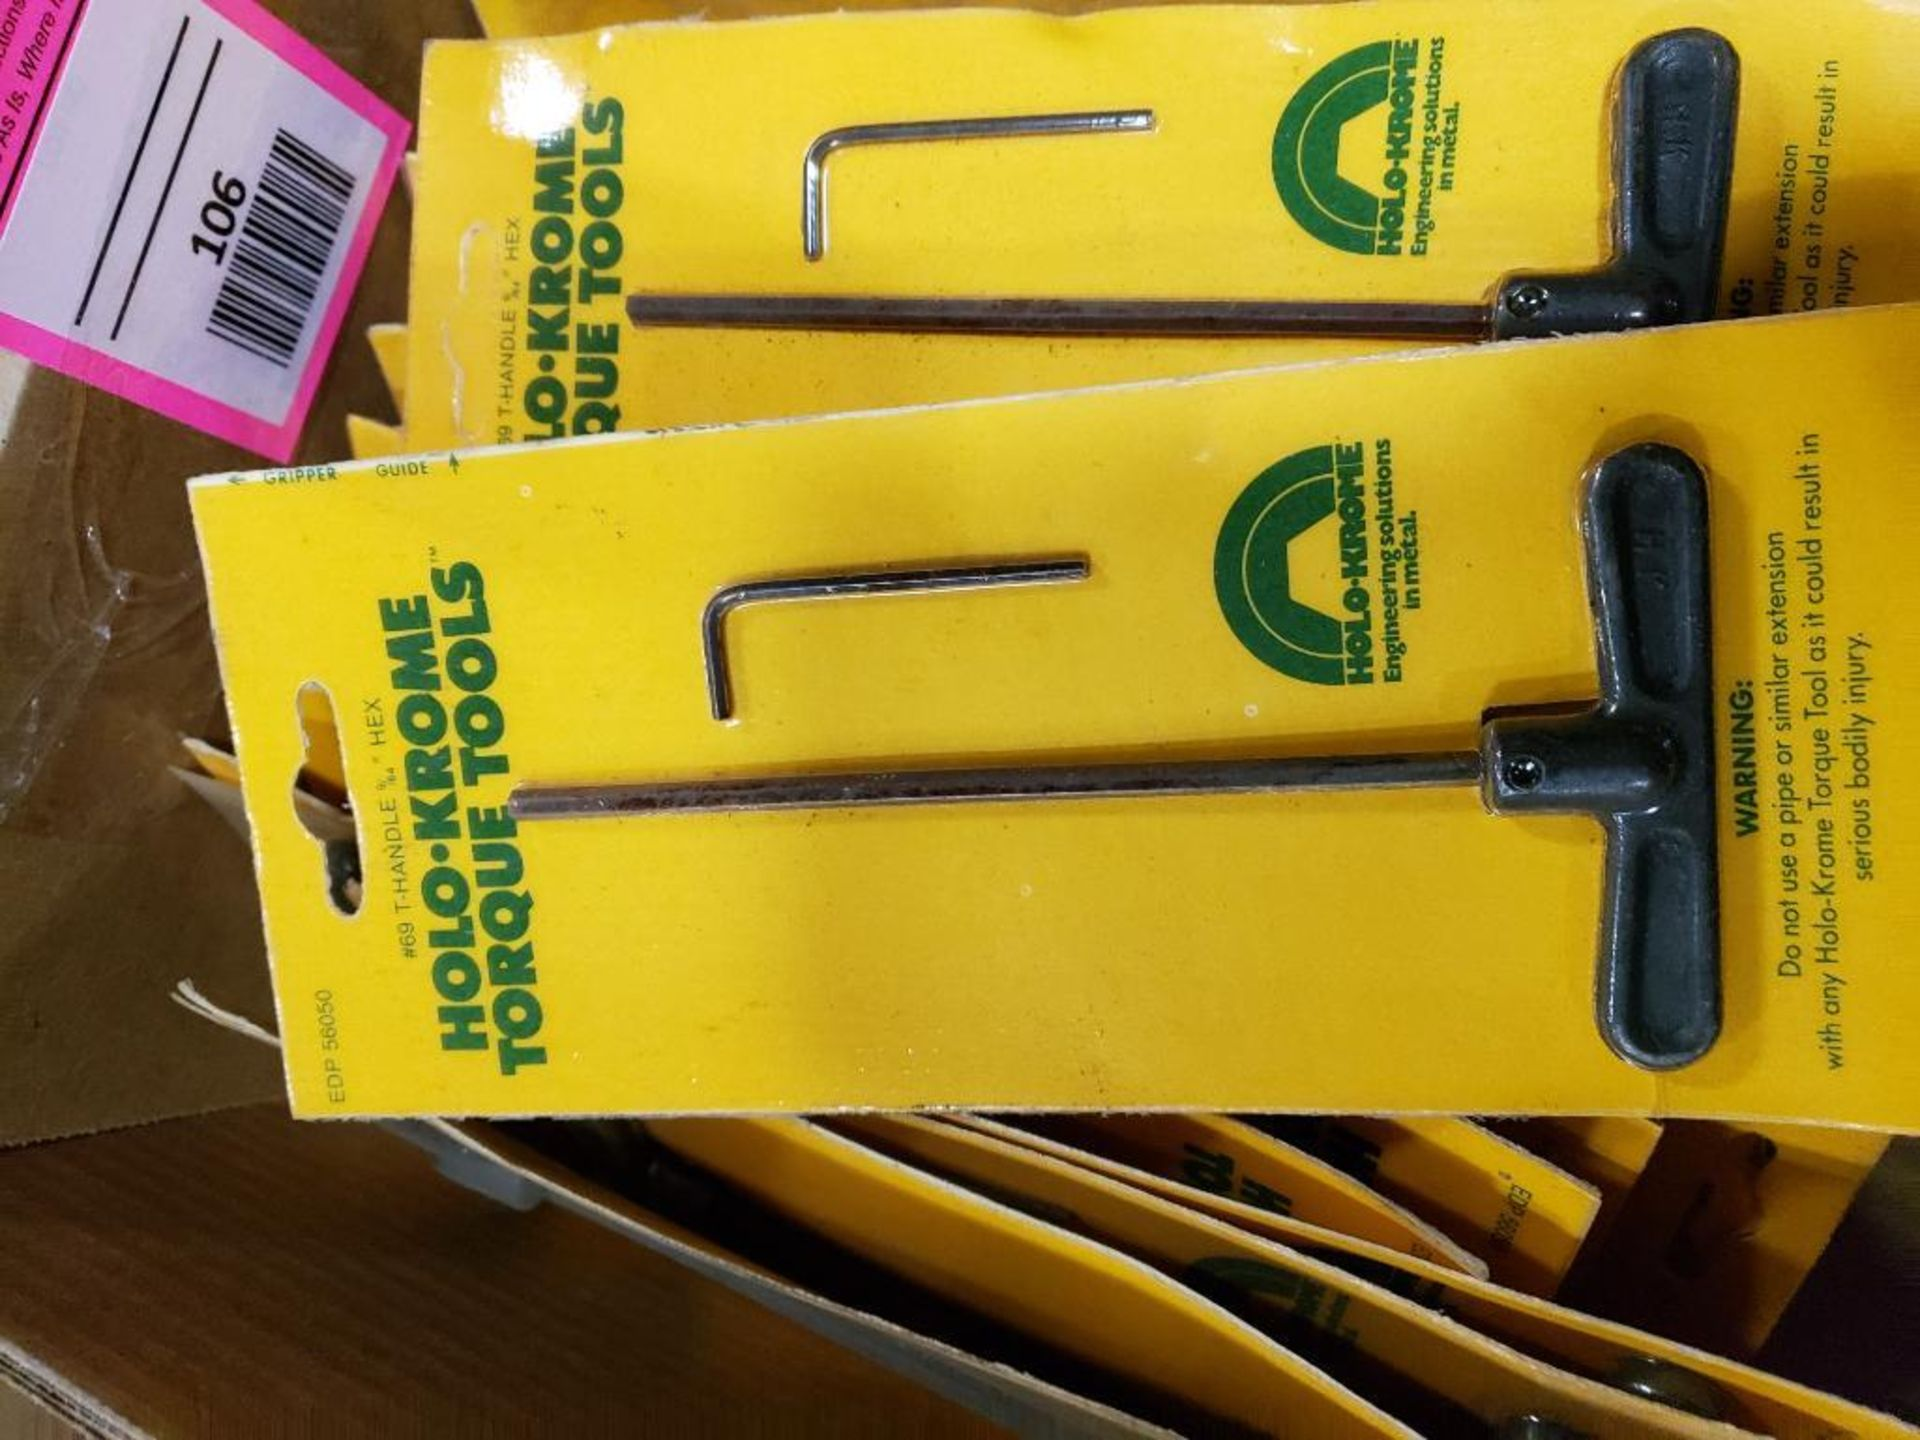 Large Qty of Holo-Krome allen wrenches. New. - Image 3 of 4